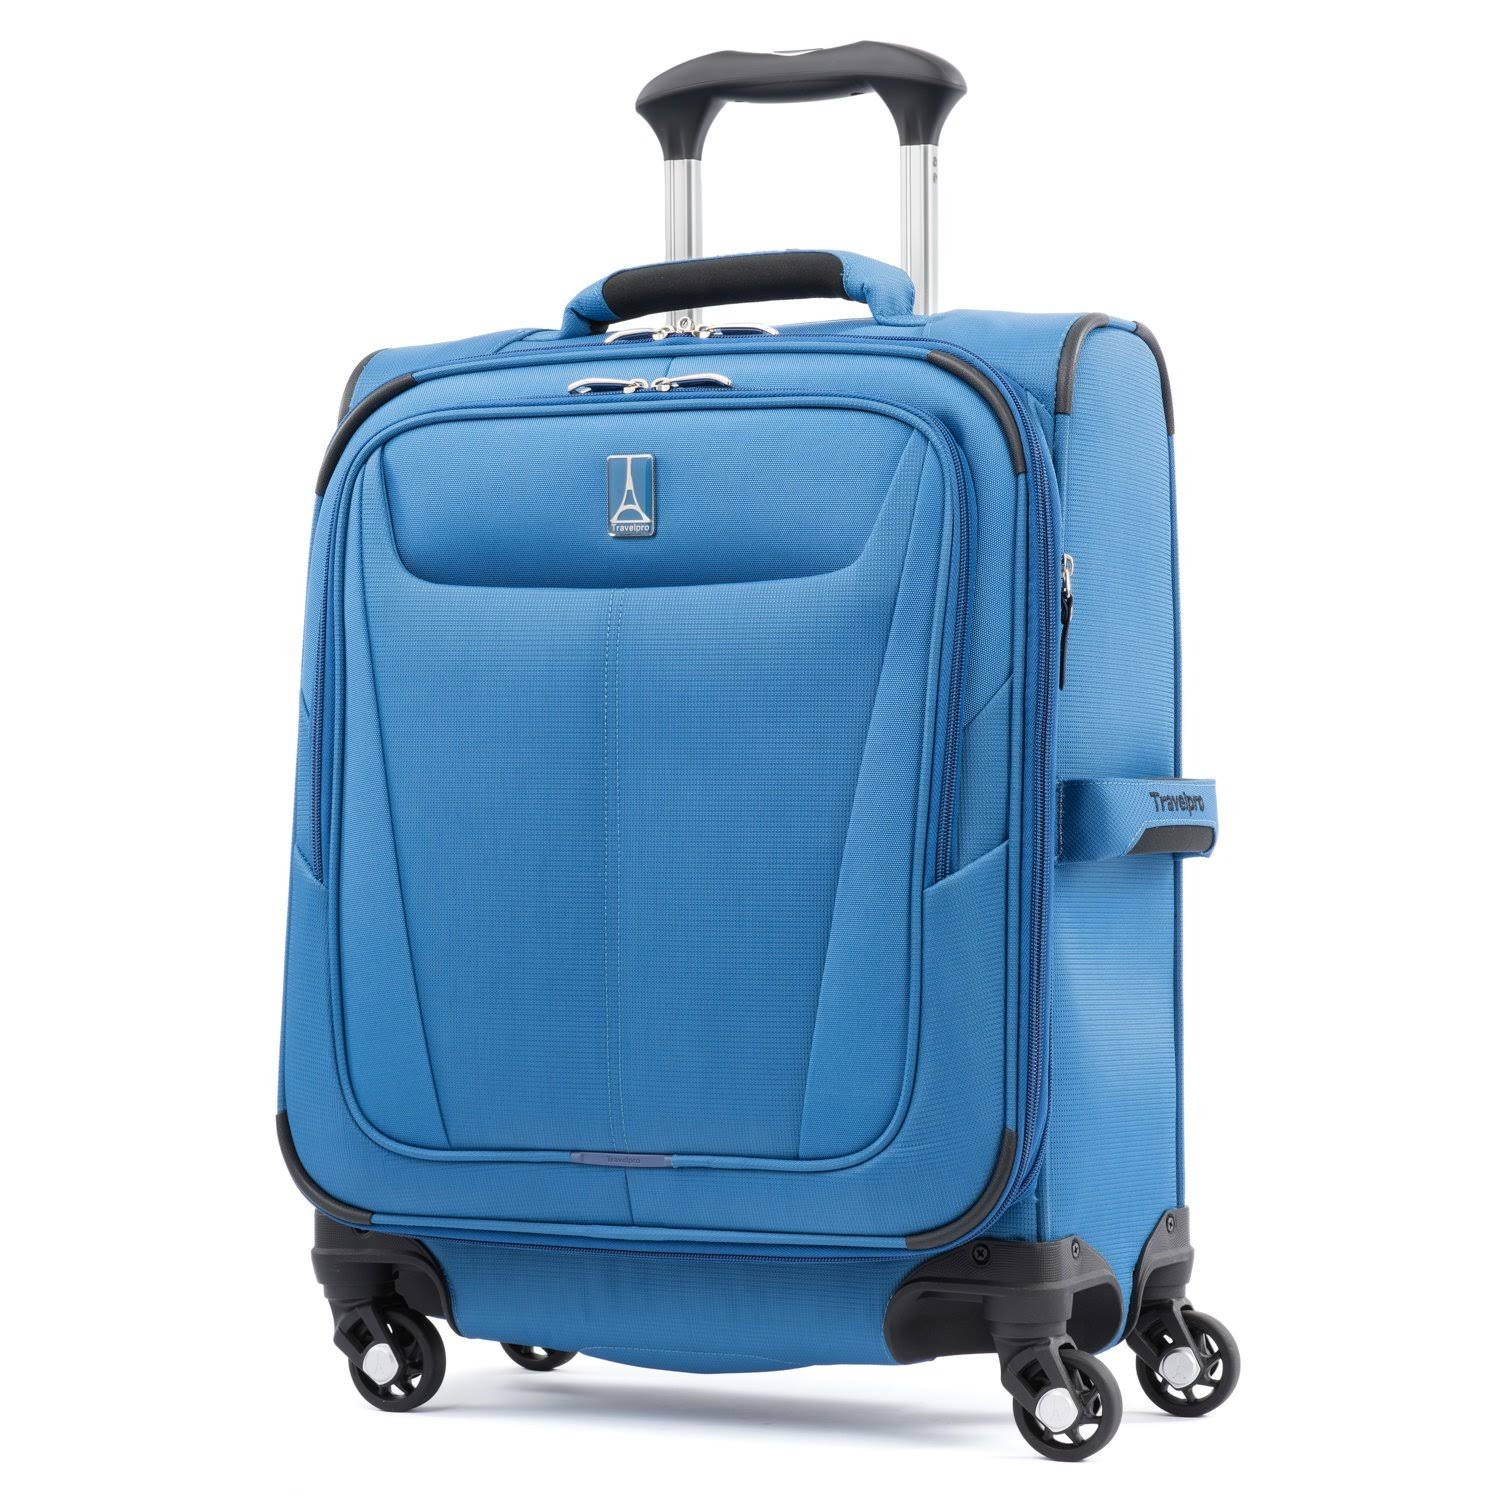 TravelPro Maxlite 5 International Expandable Carry-On Spinner - Azure Blue